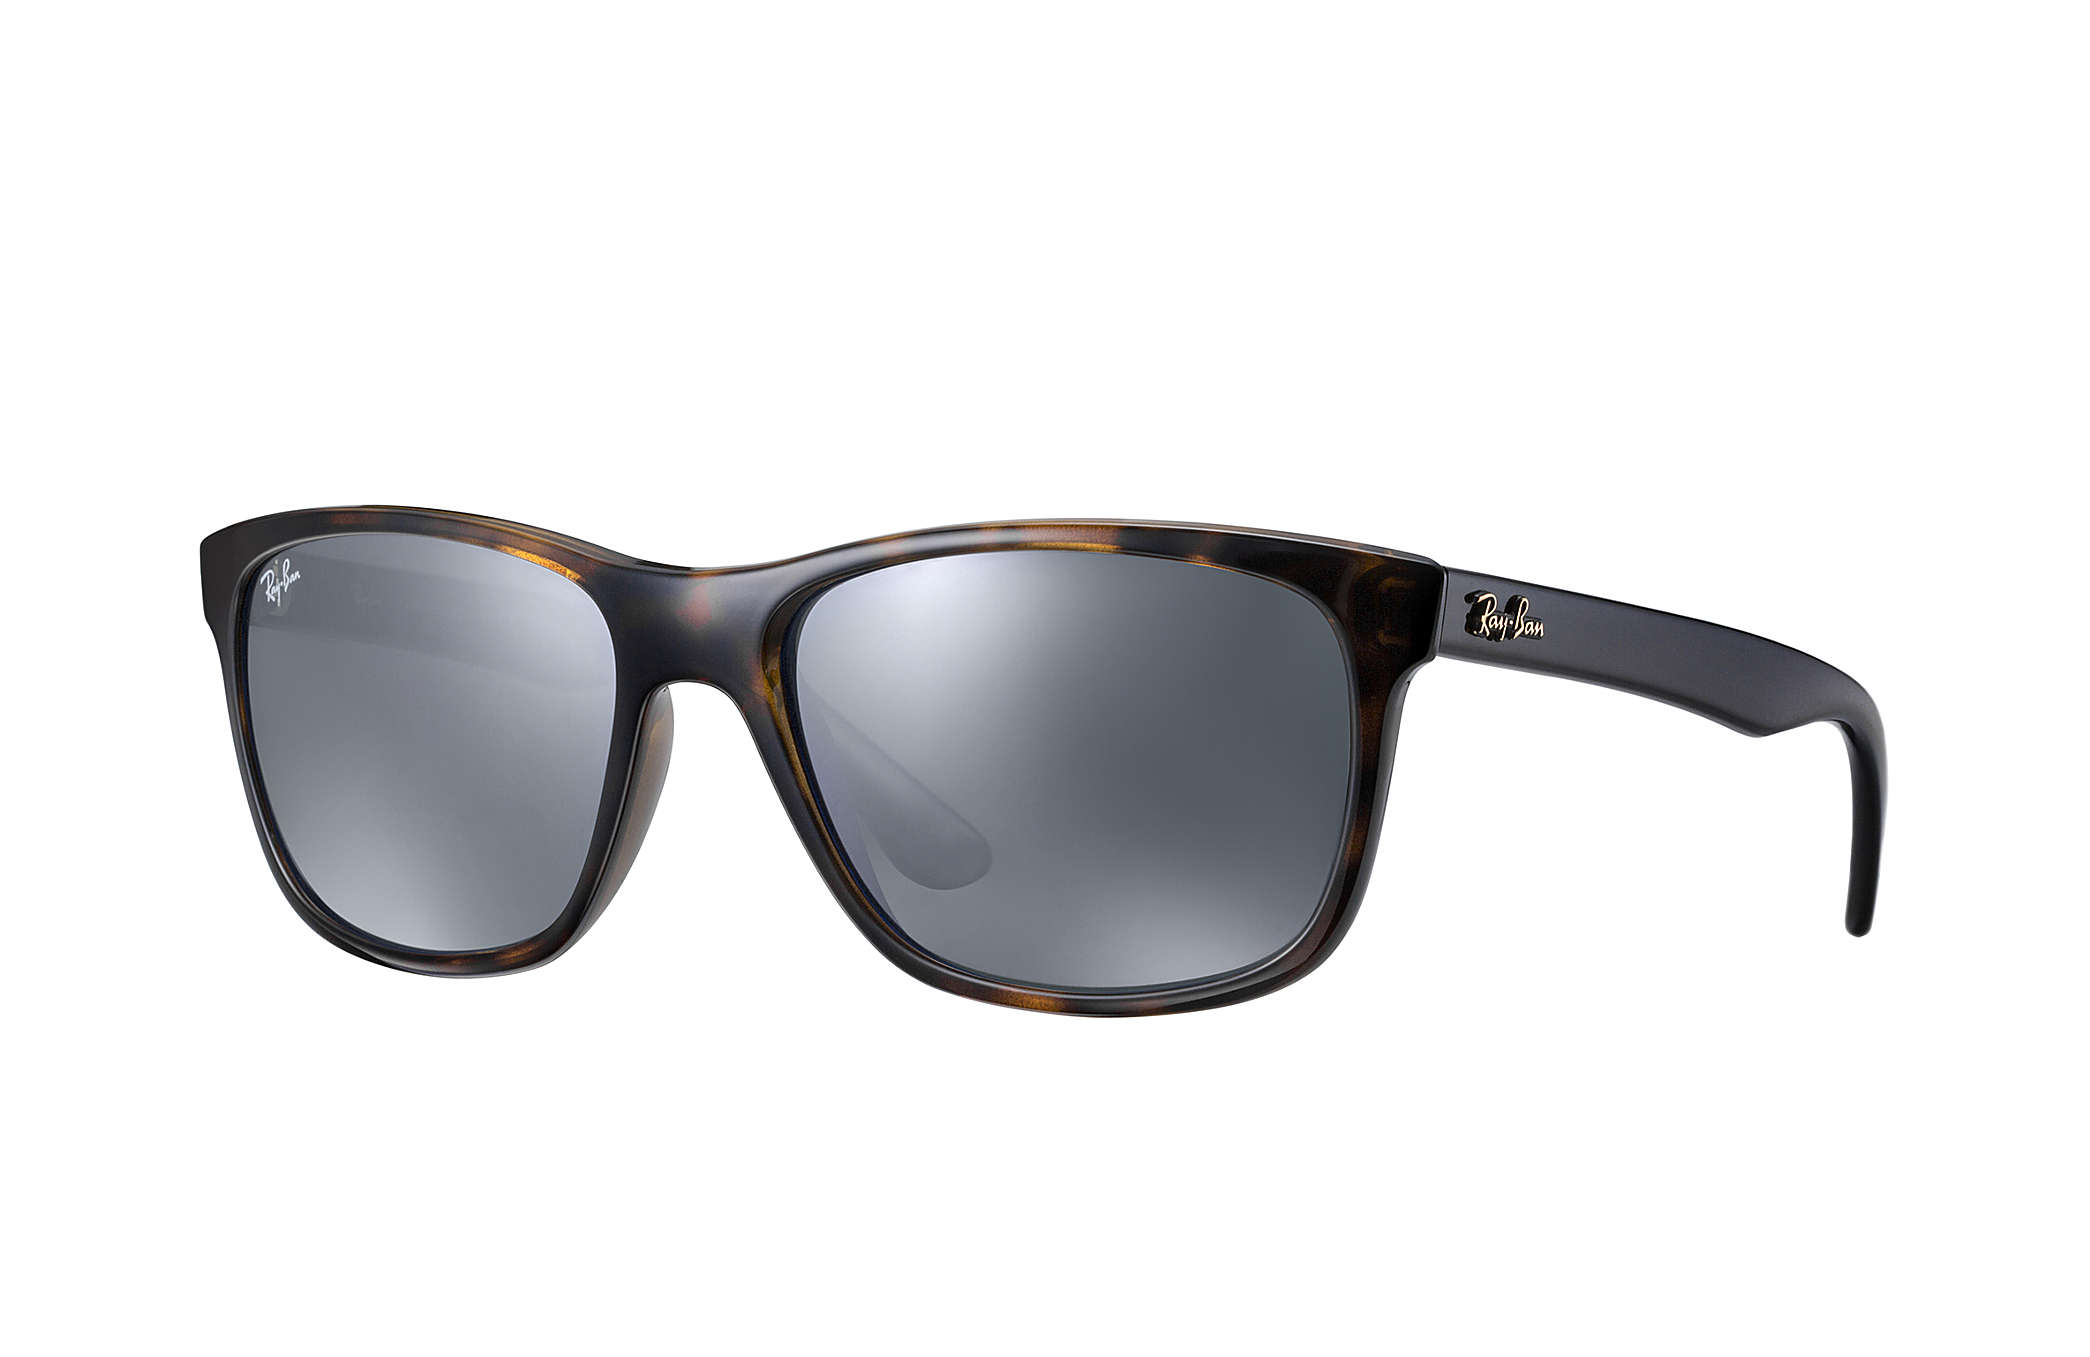 ddc6792d5a9d Ray-Ban Rb4181  collection RB4181 Blue - Nylon - Grey Lenses ...